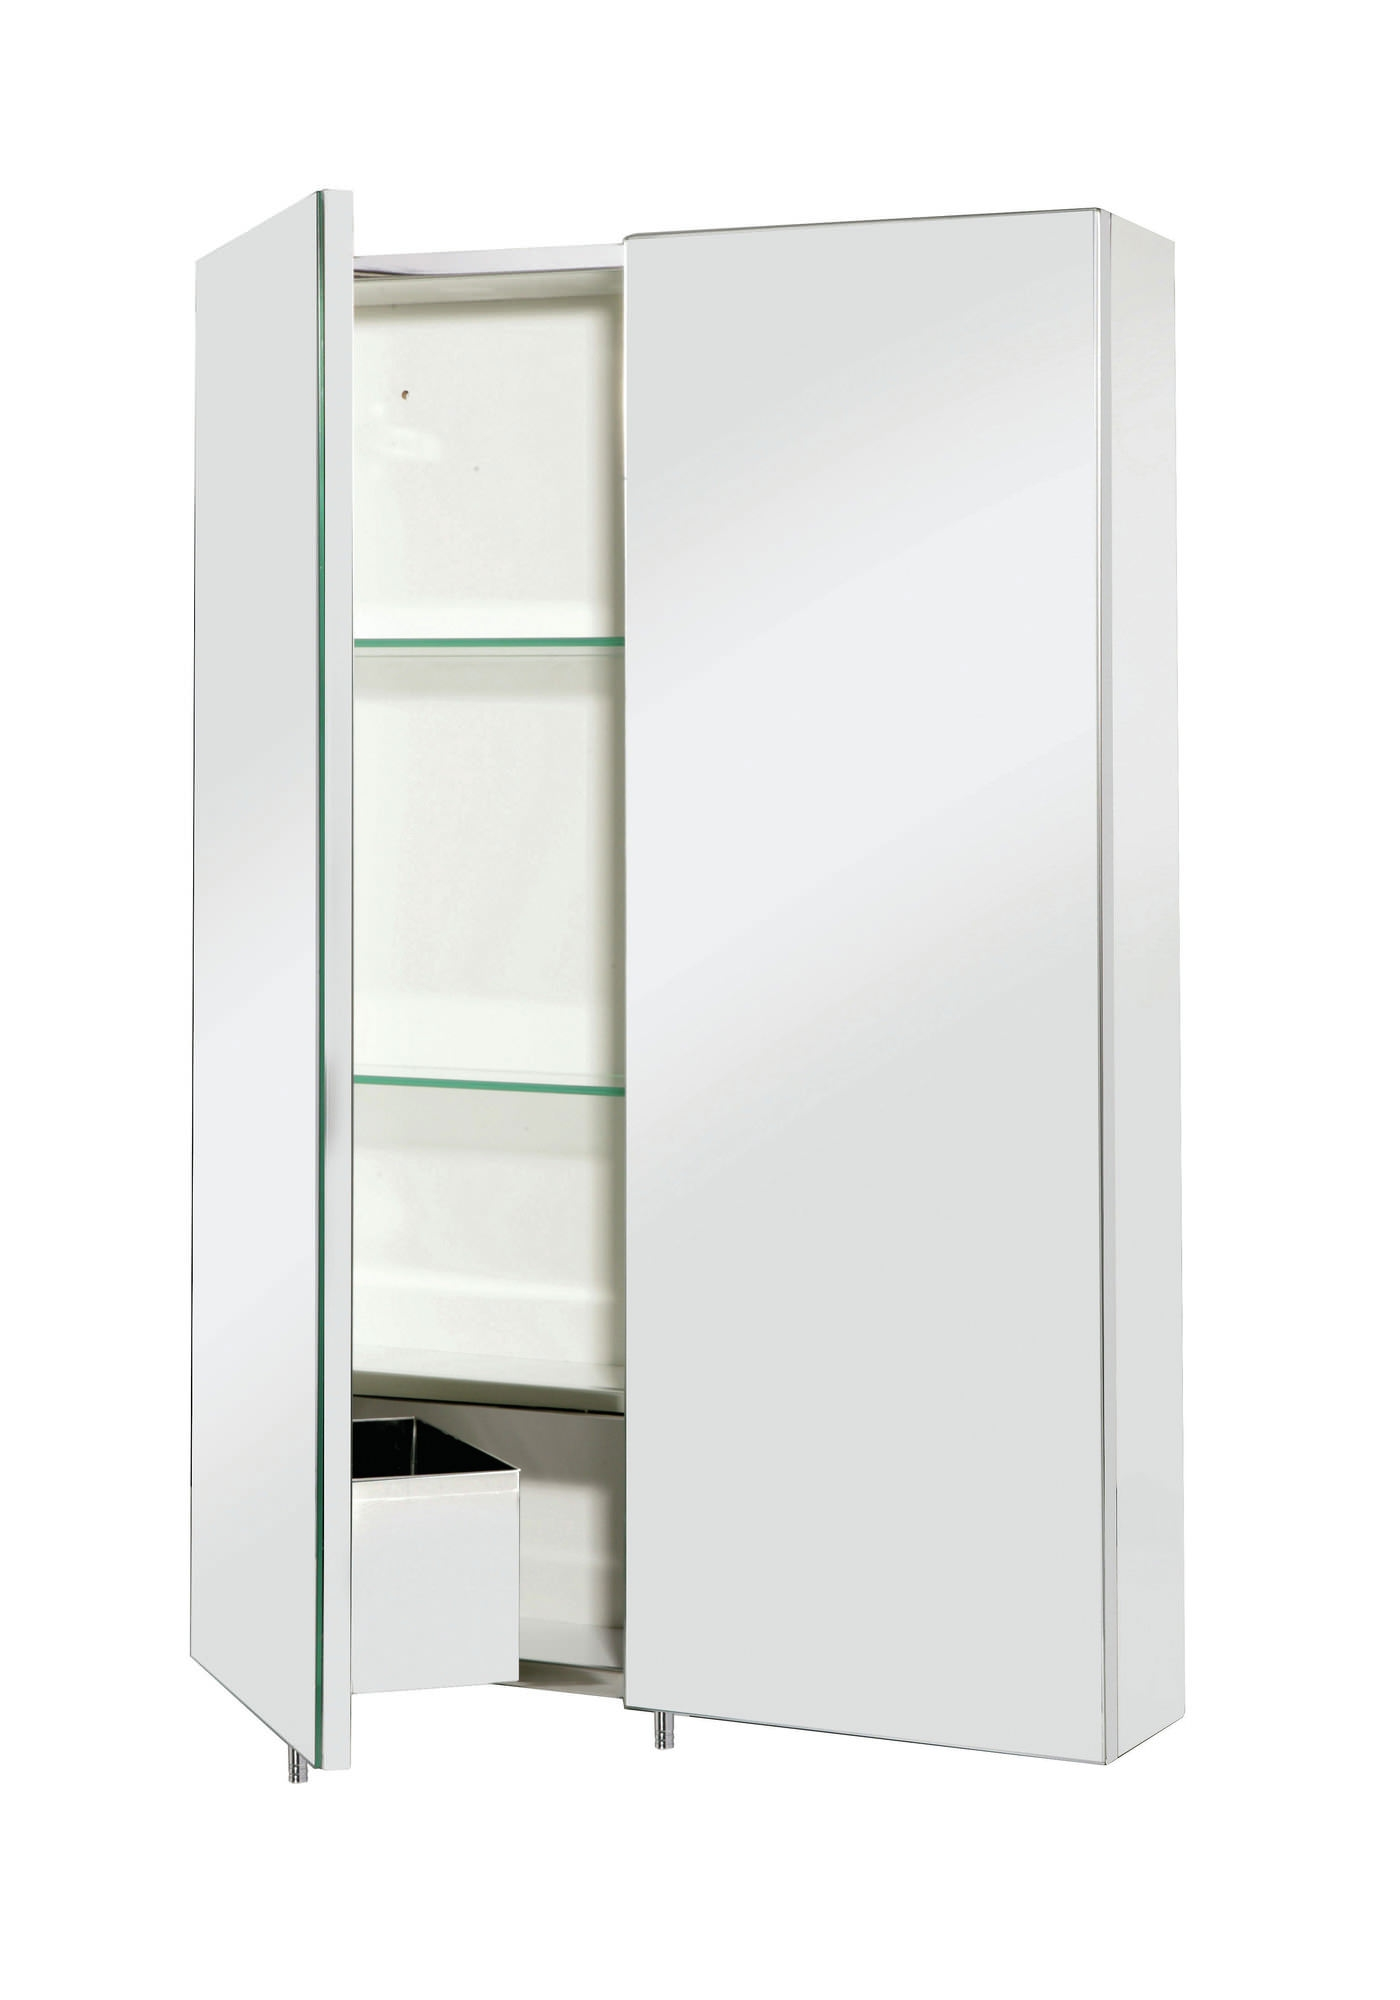 Croydex Anton Double Door Stainless Steel Mirrored Bathroom Cabinet